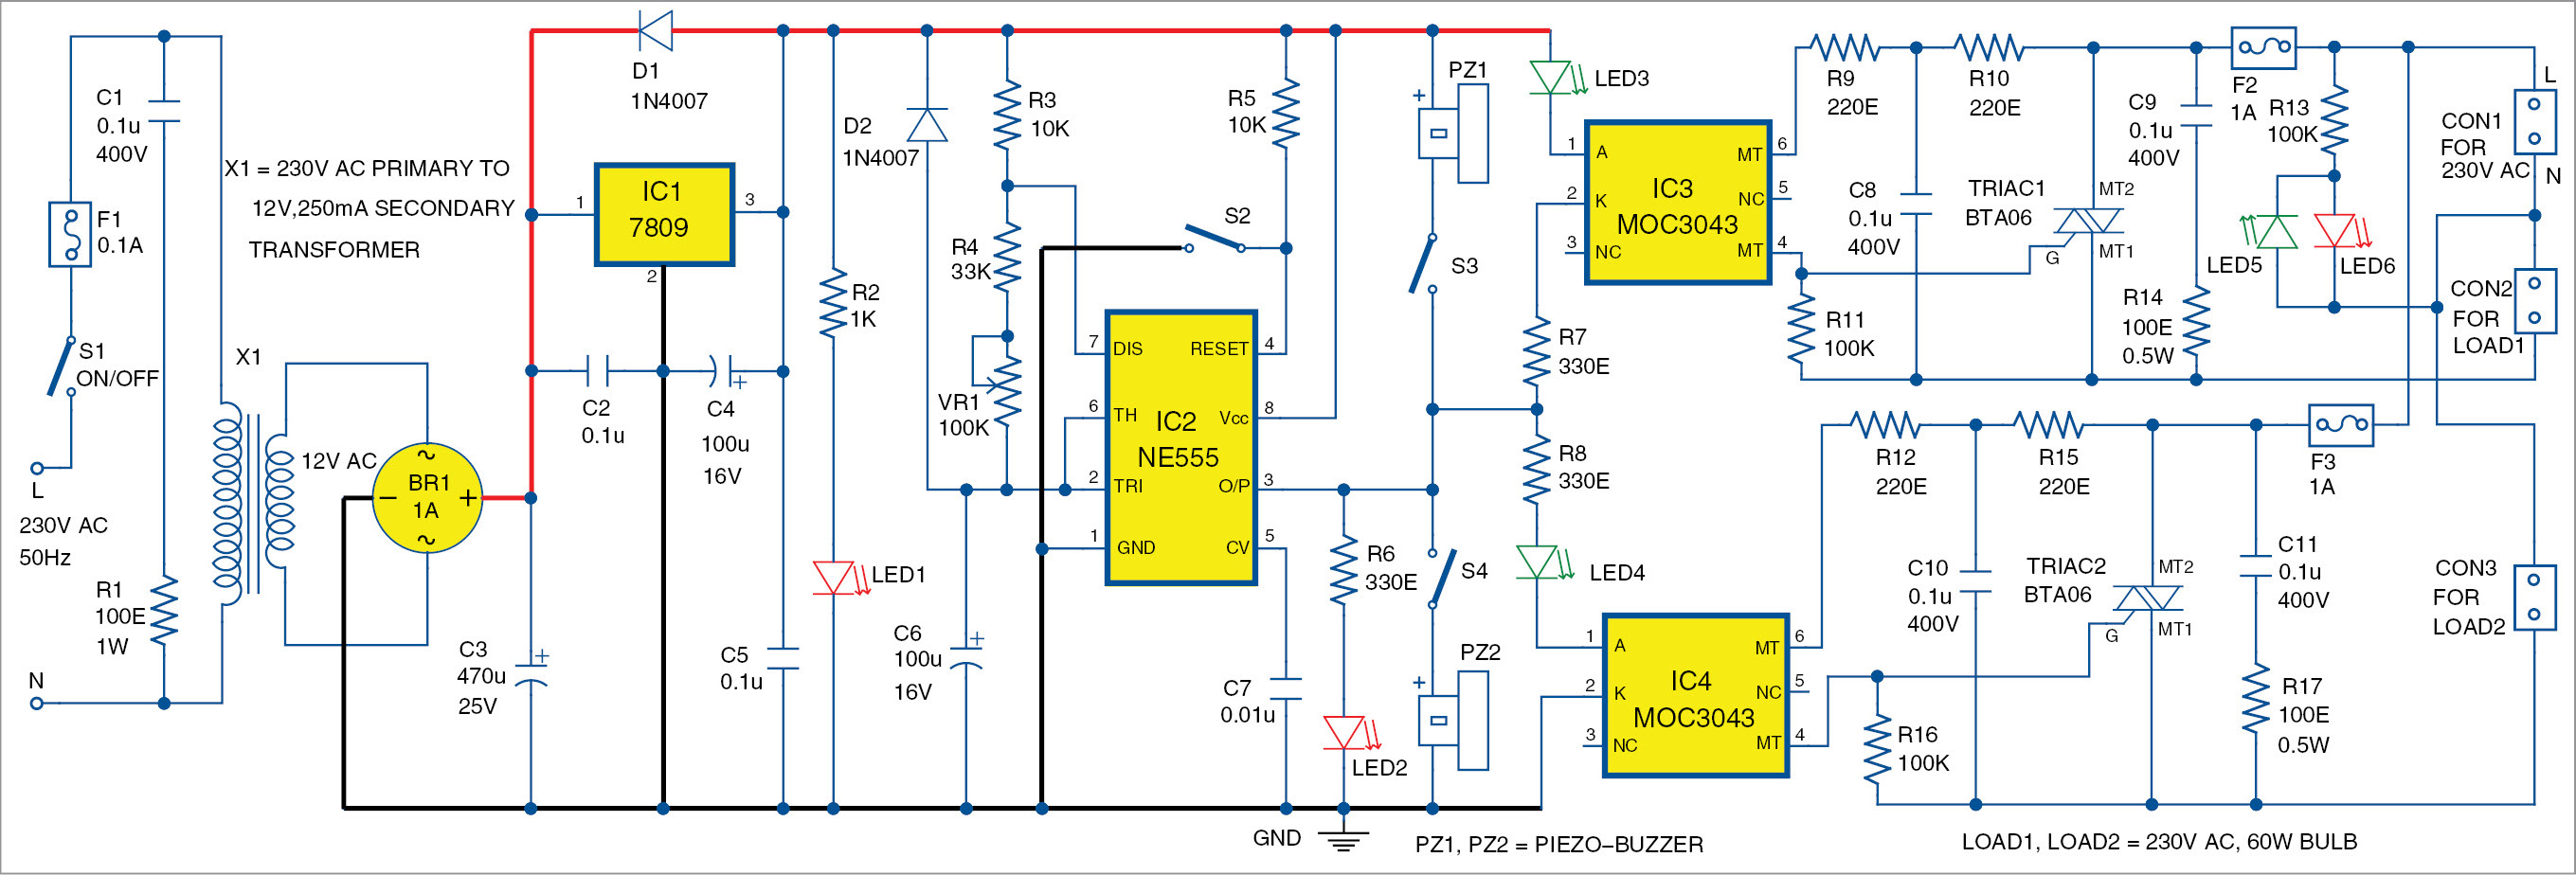 Ac Lamp Blinker Using Timer 555 Full Electronics Project Circuit Triac Controlled Automatic Voltage Stabilizer Electronic